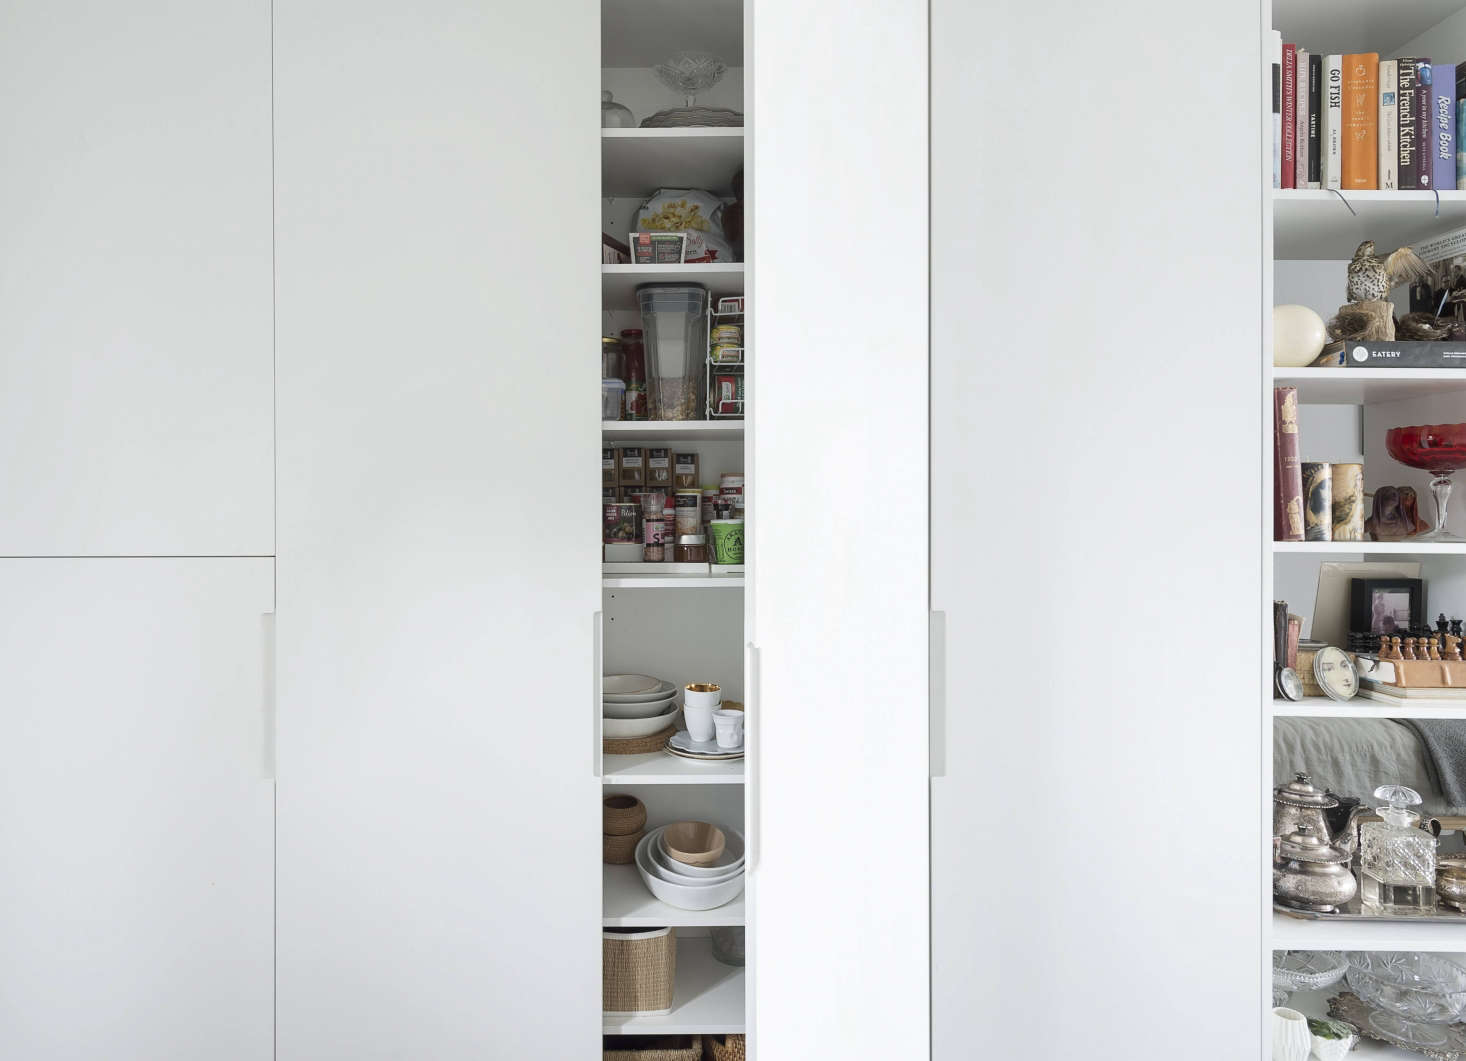 Floor-to-ceiling cabinets conceal dinnerware and dry goods.